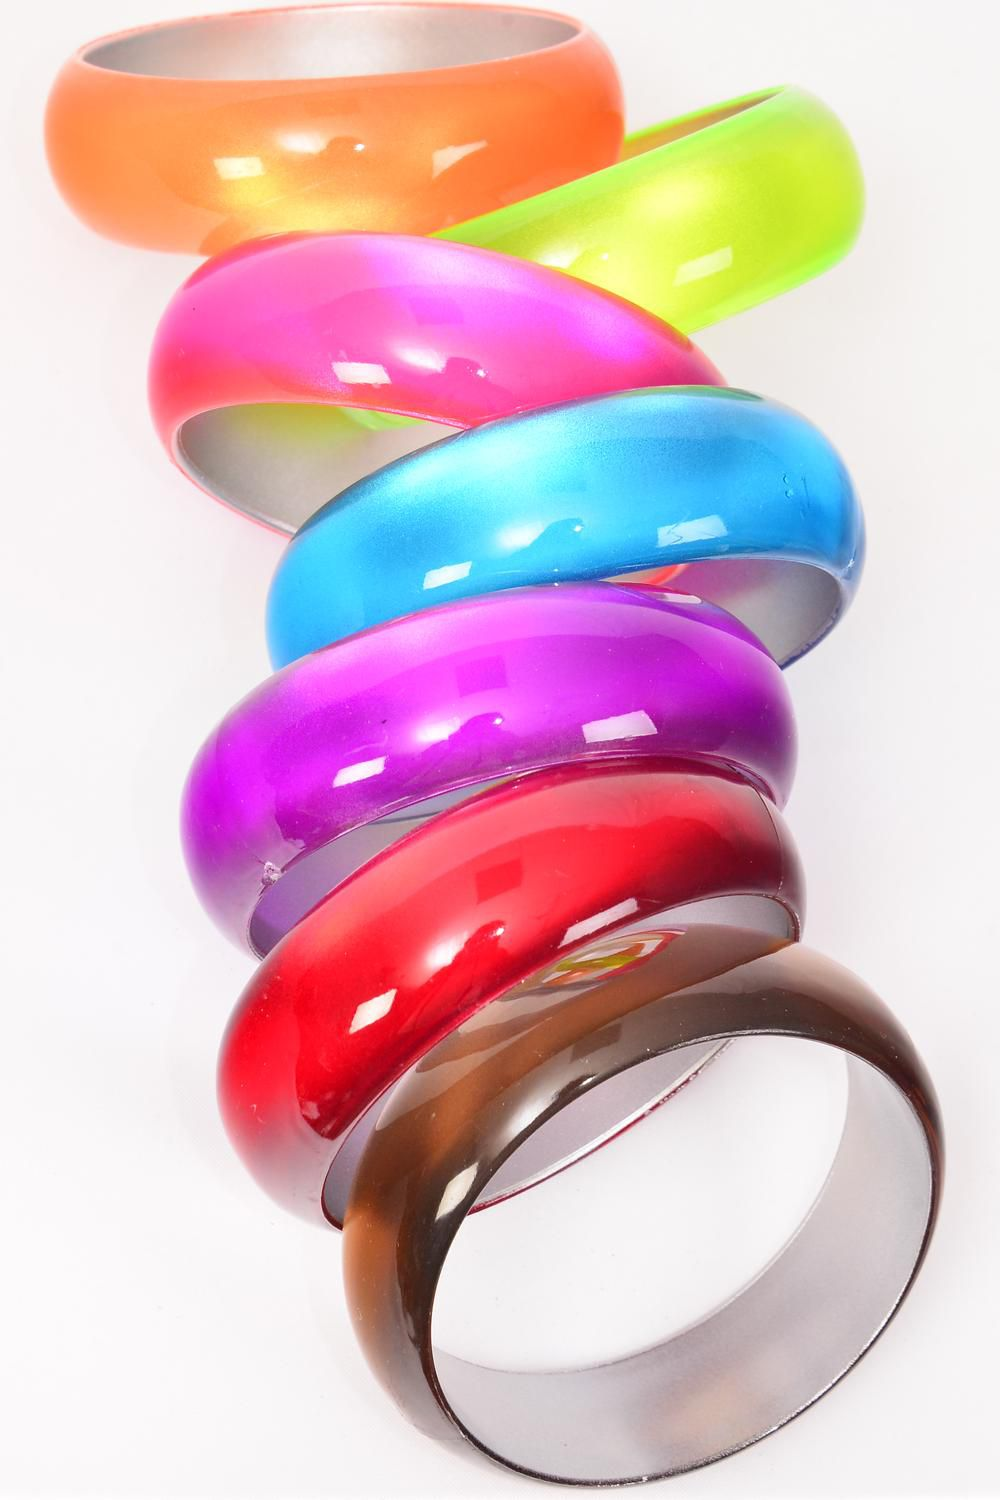 "Bangle Acrylic Cat eye Color Asst/DZ match 02102 Size-2.75""x 1"" Dia Wide,2 Red,2 Pink,2 Blue,2 Brown,2 Purple,1 Orange,1 Lime,7 Color Asst,Hang Tag & Opp bag & UPC Code"